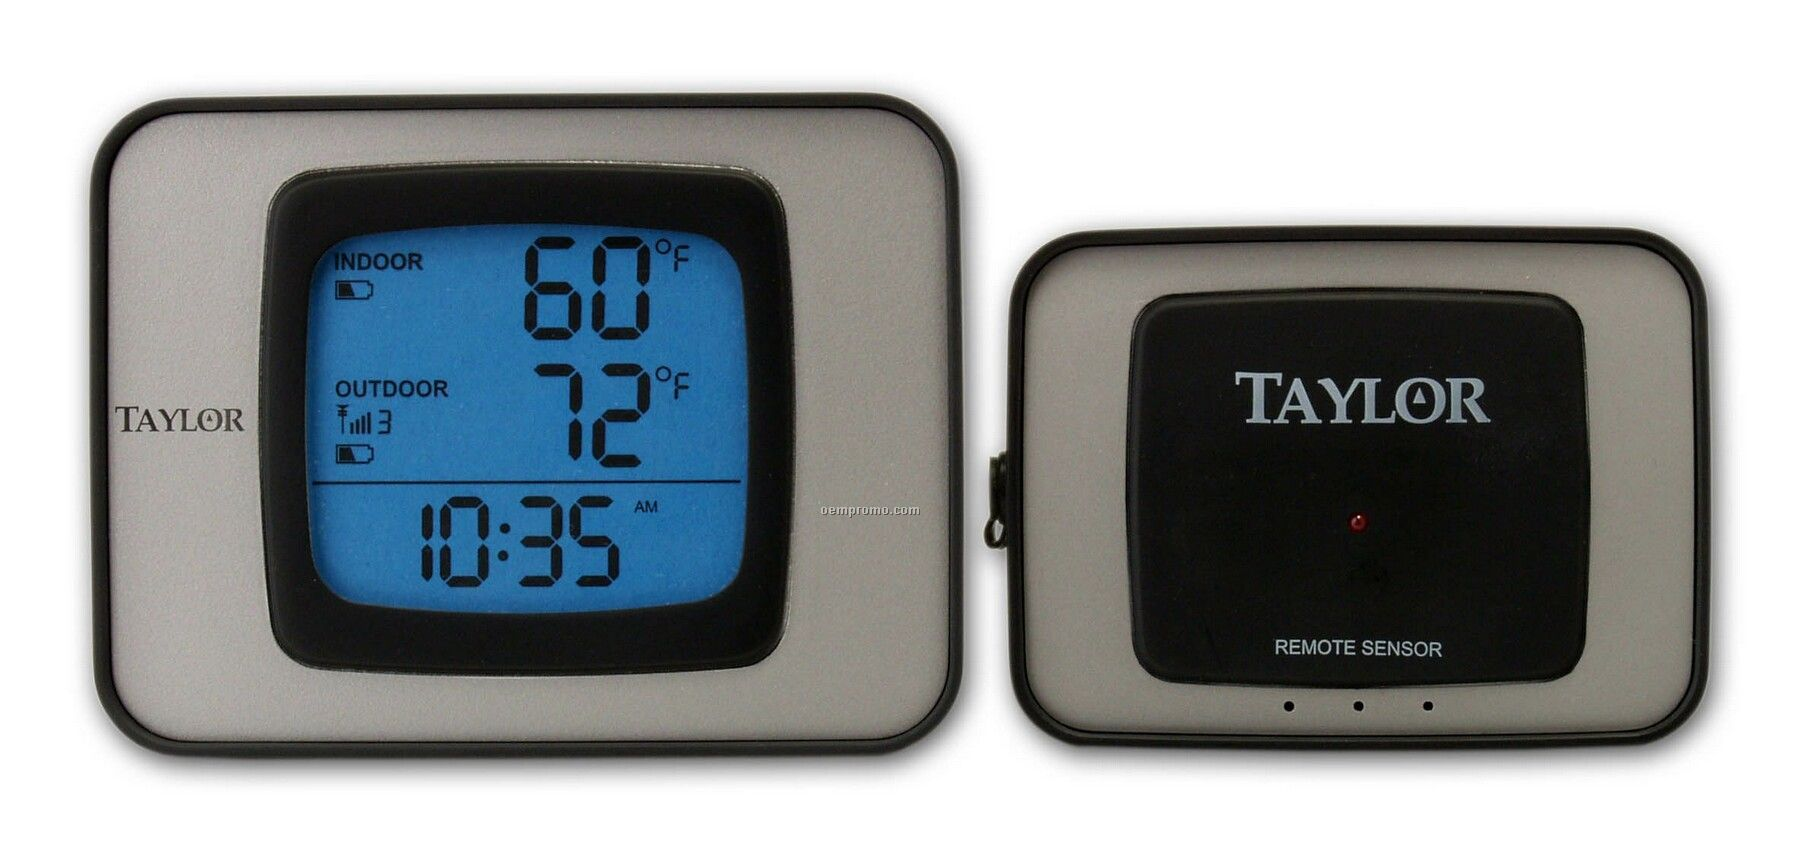 Taylor Wireless Indoor And Outdoor Thermometer W/ Clock